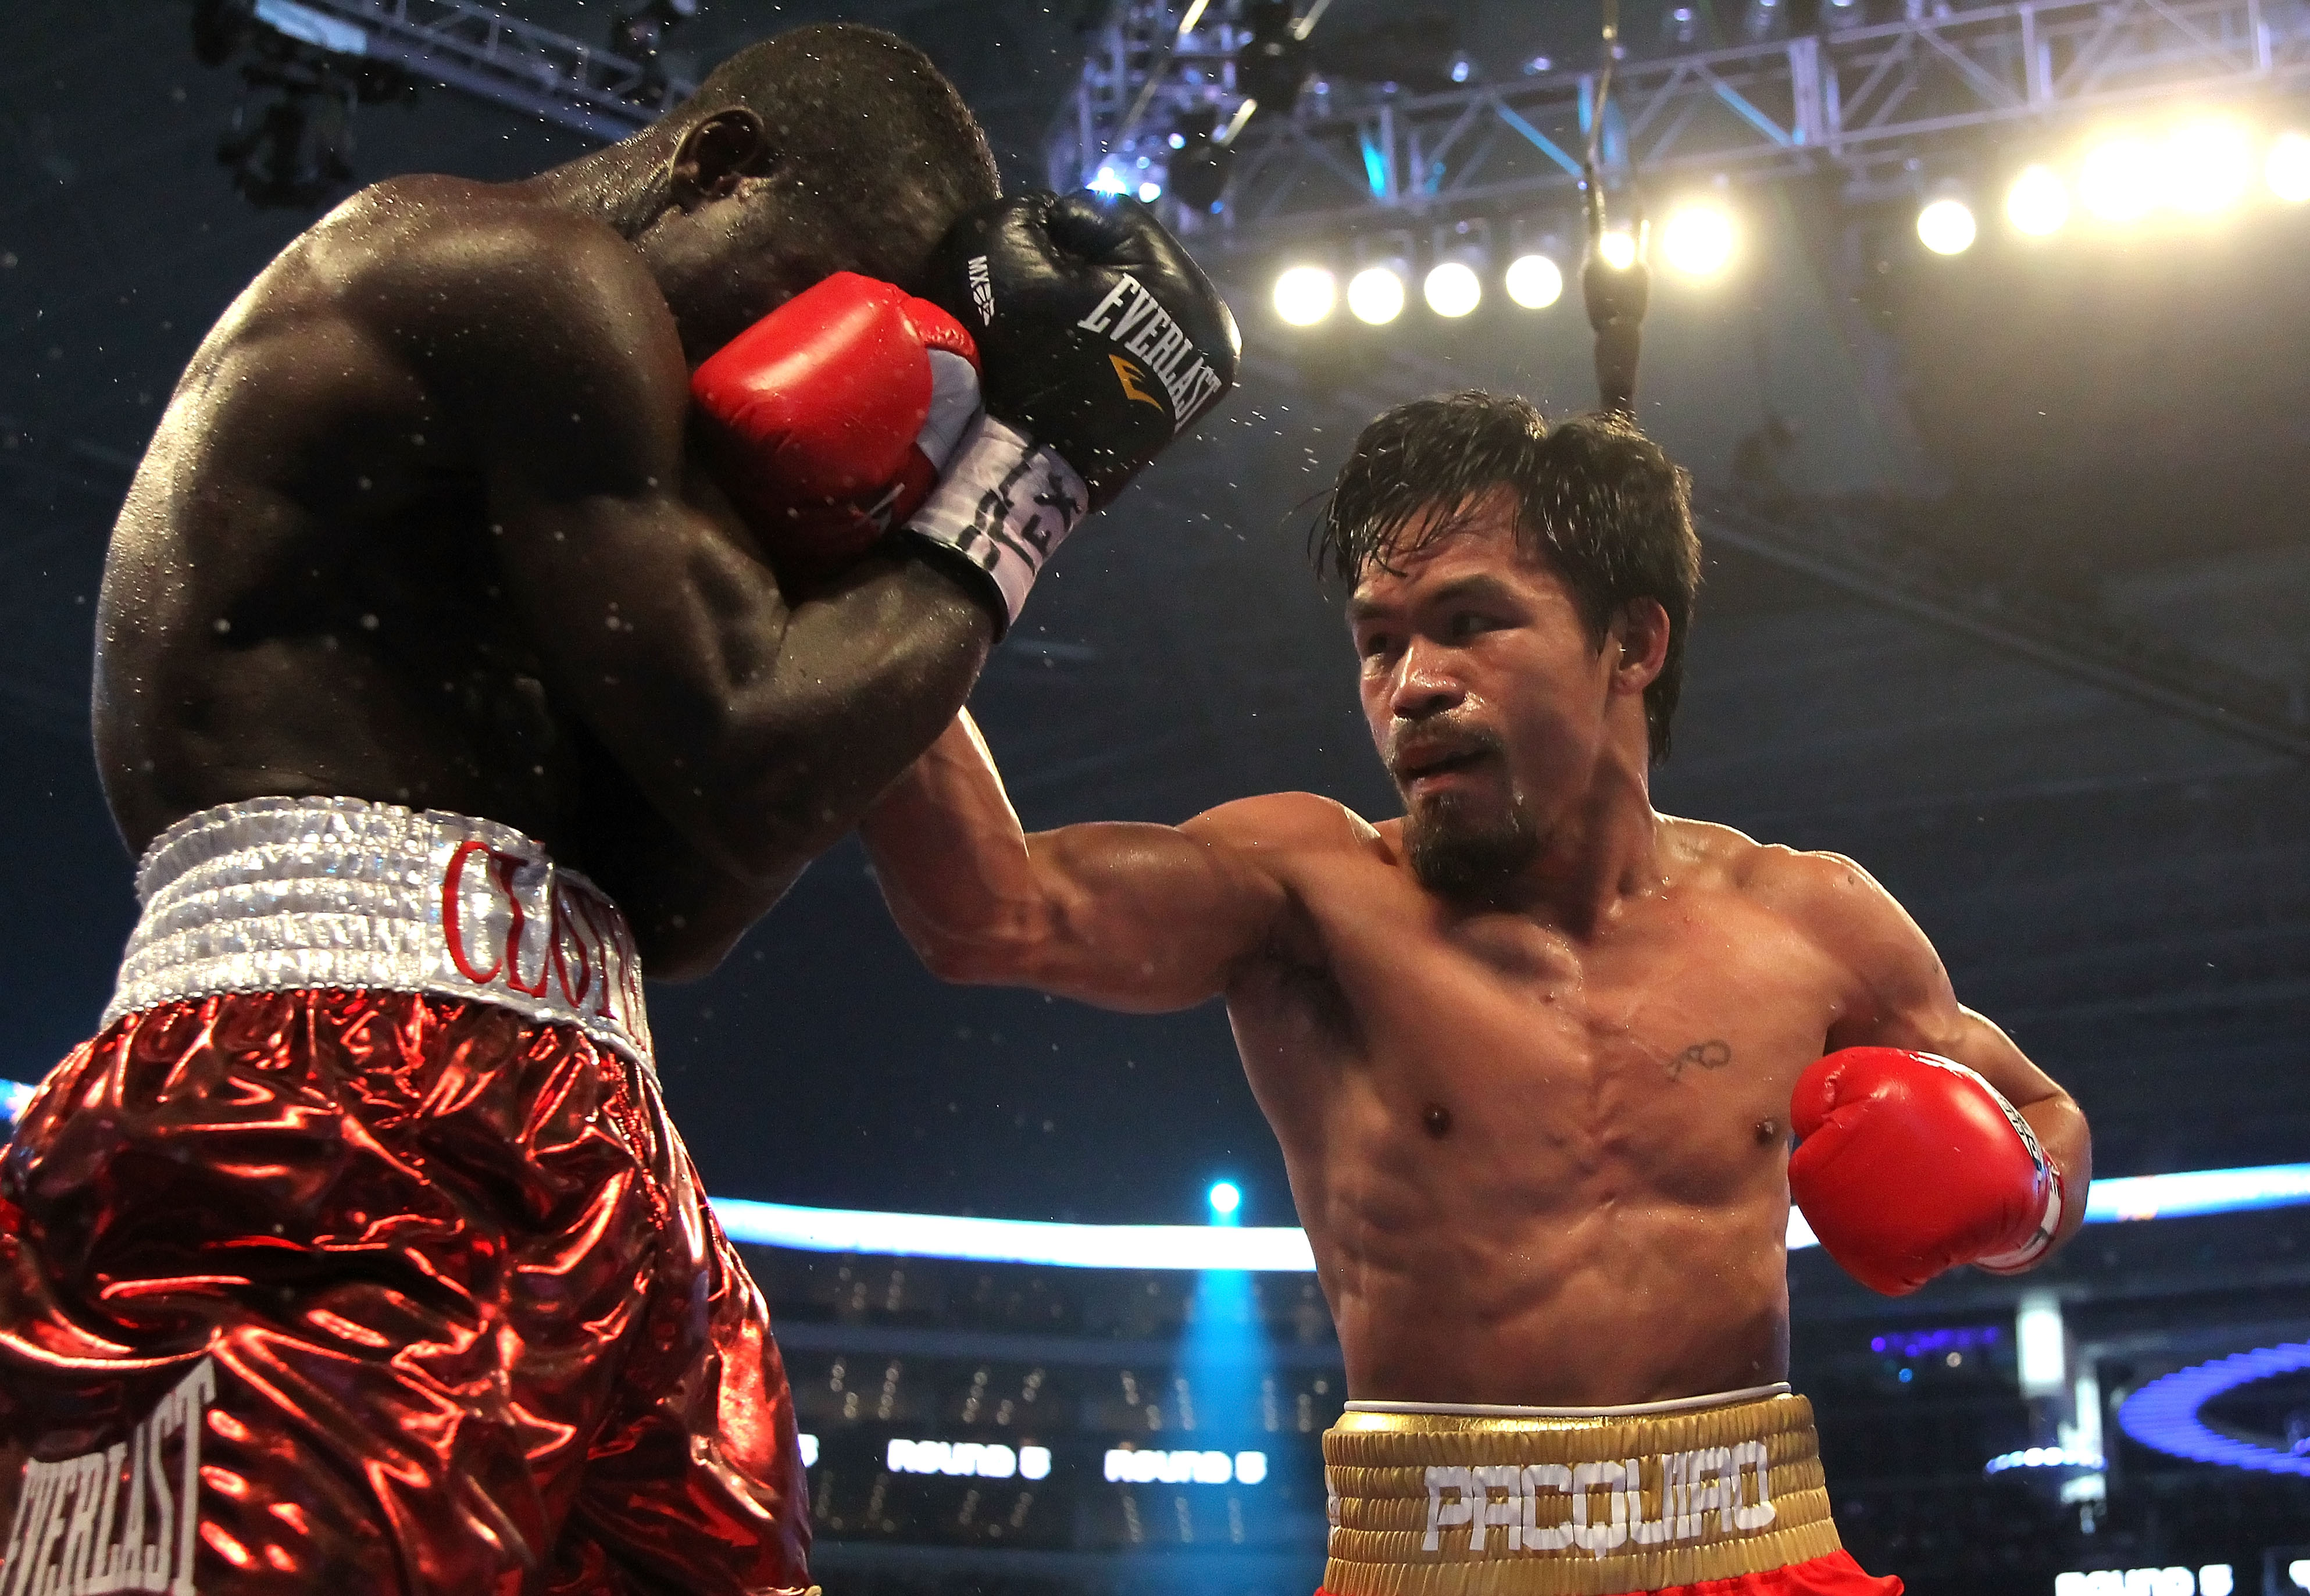 ARLINGTON, TX - MARCH 13:  (R-L) Manny Pacquiao of the Philippines throws a right to the head of Joshua Clottey of Ghana during the WBO welterweight title fight at Cowboys Stadium on March 13, 2010 in Arlington, Texas.  (Photo by Jed Jacobsohn/Getty Image